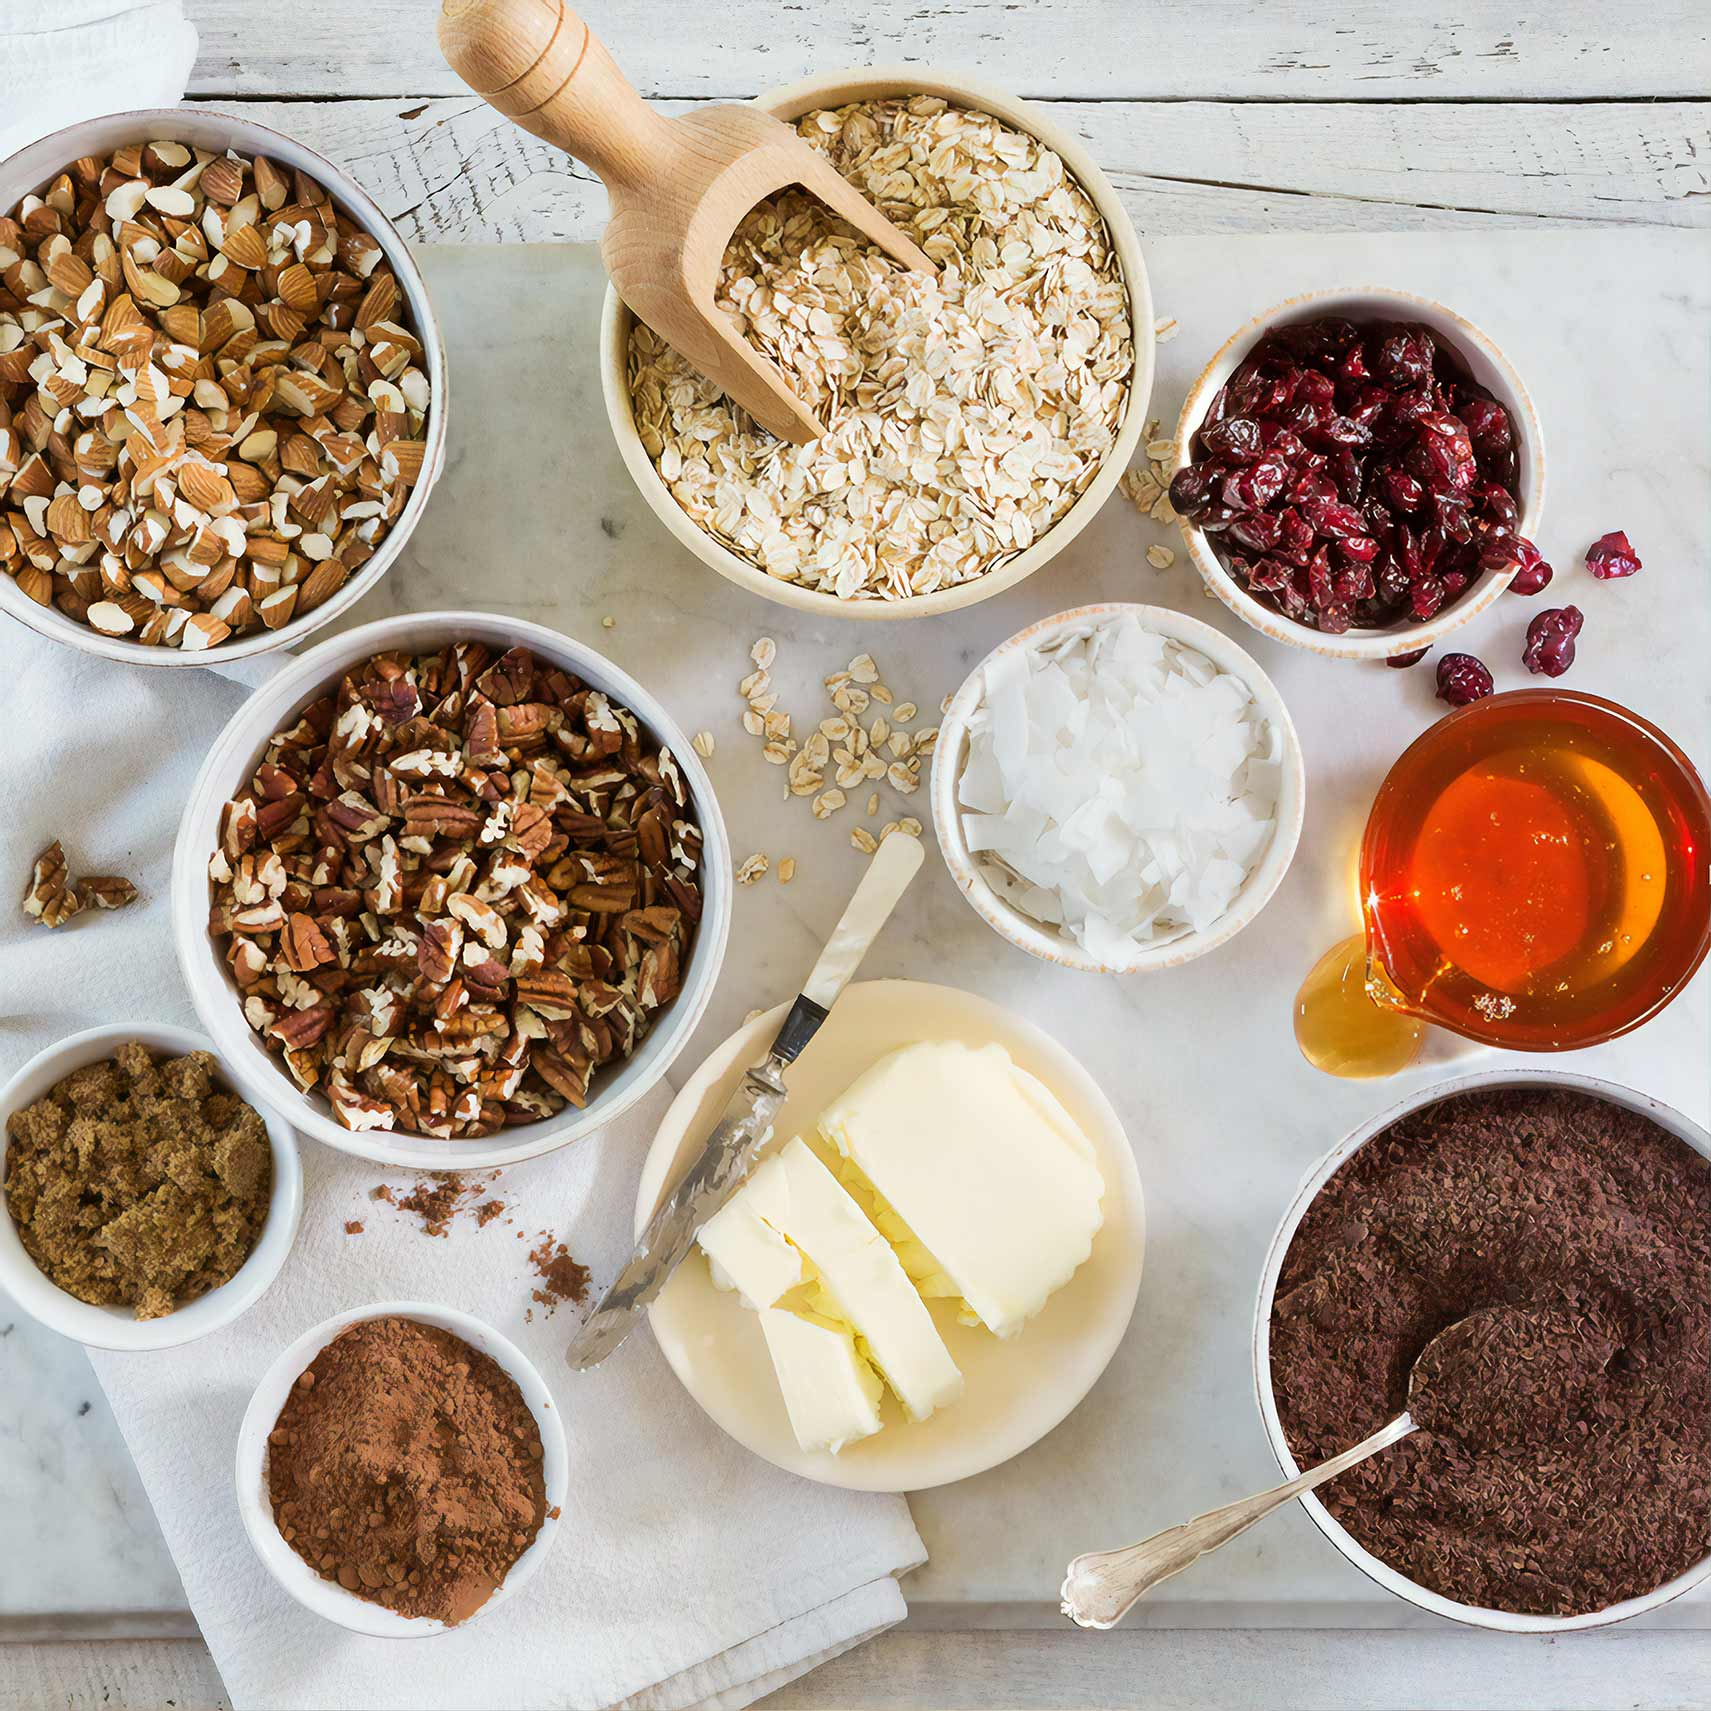 5 Tips for Starting a Gluten-free Life